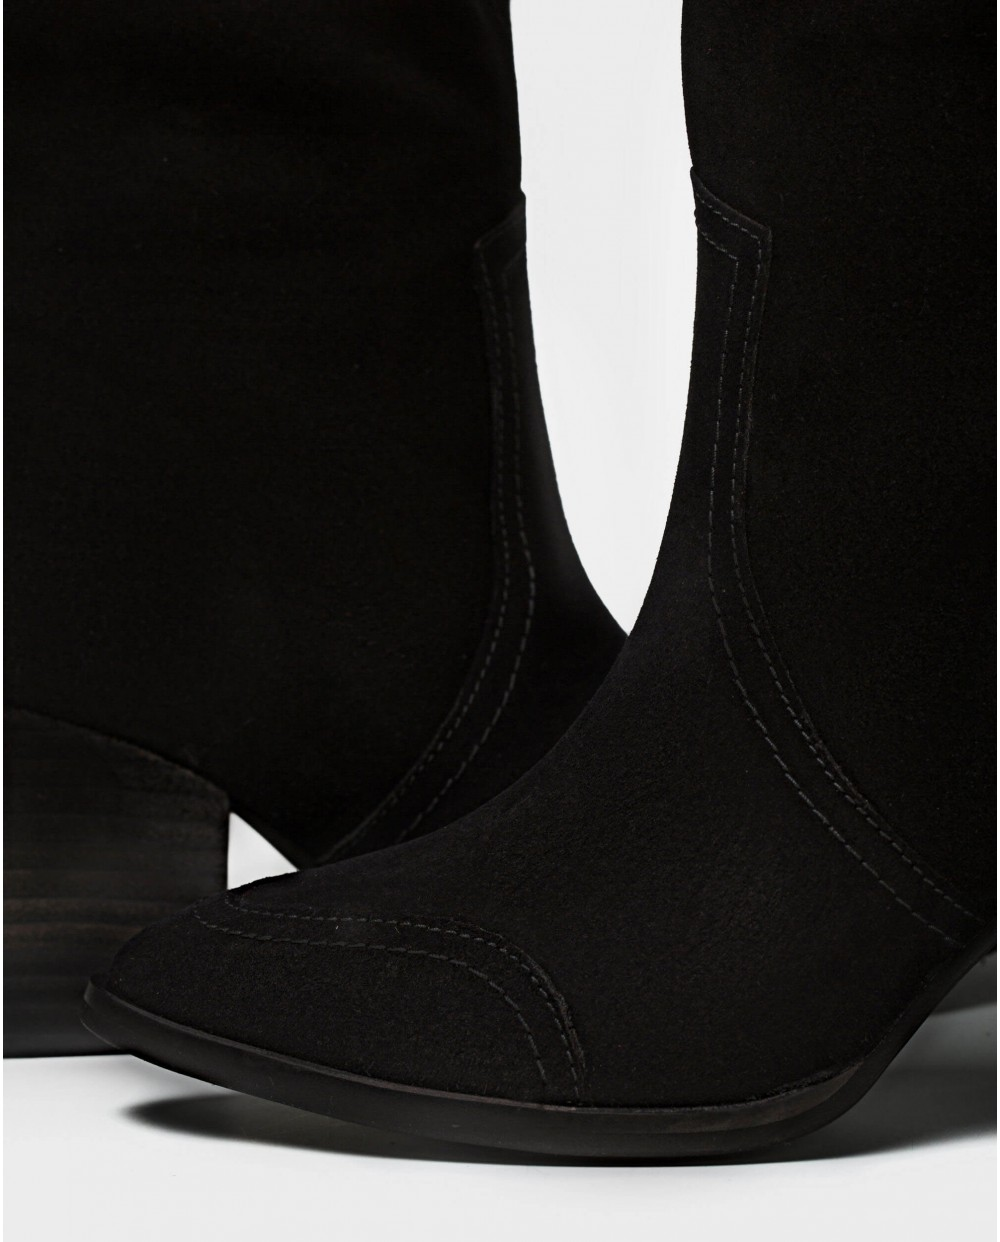 Wonders-Ankle Boots-Leather waterproof 3/4 boot.